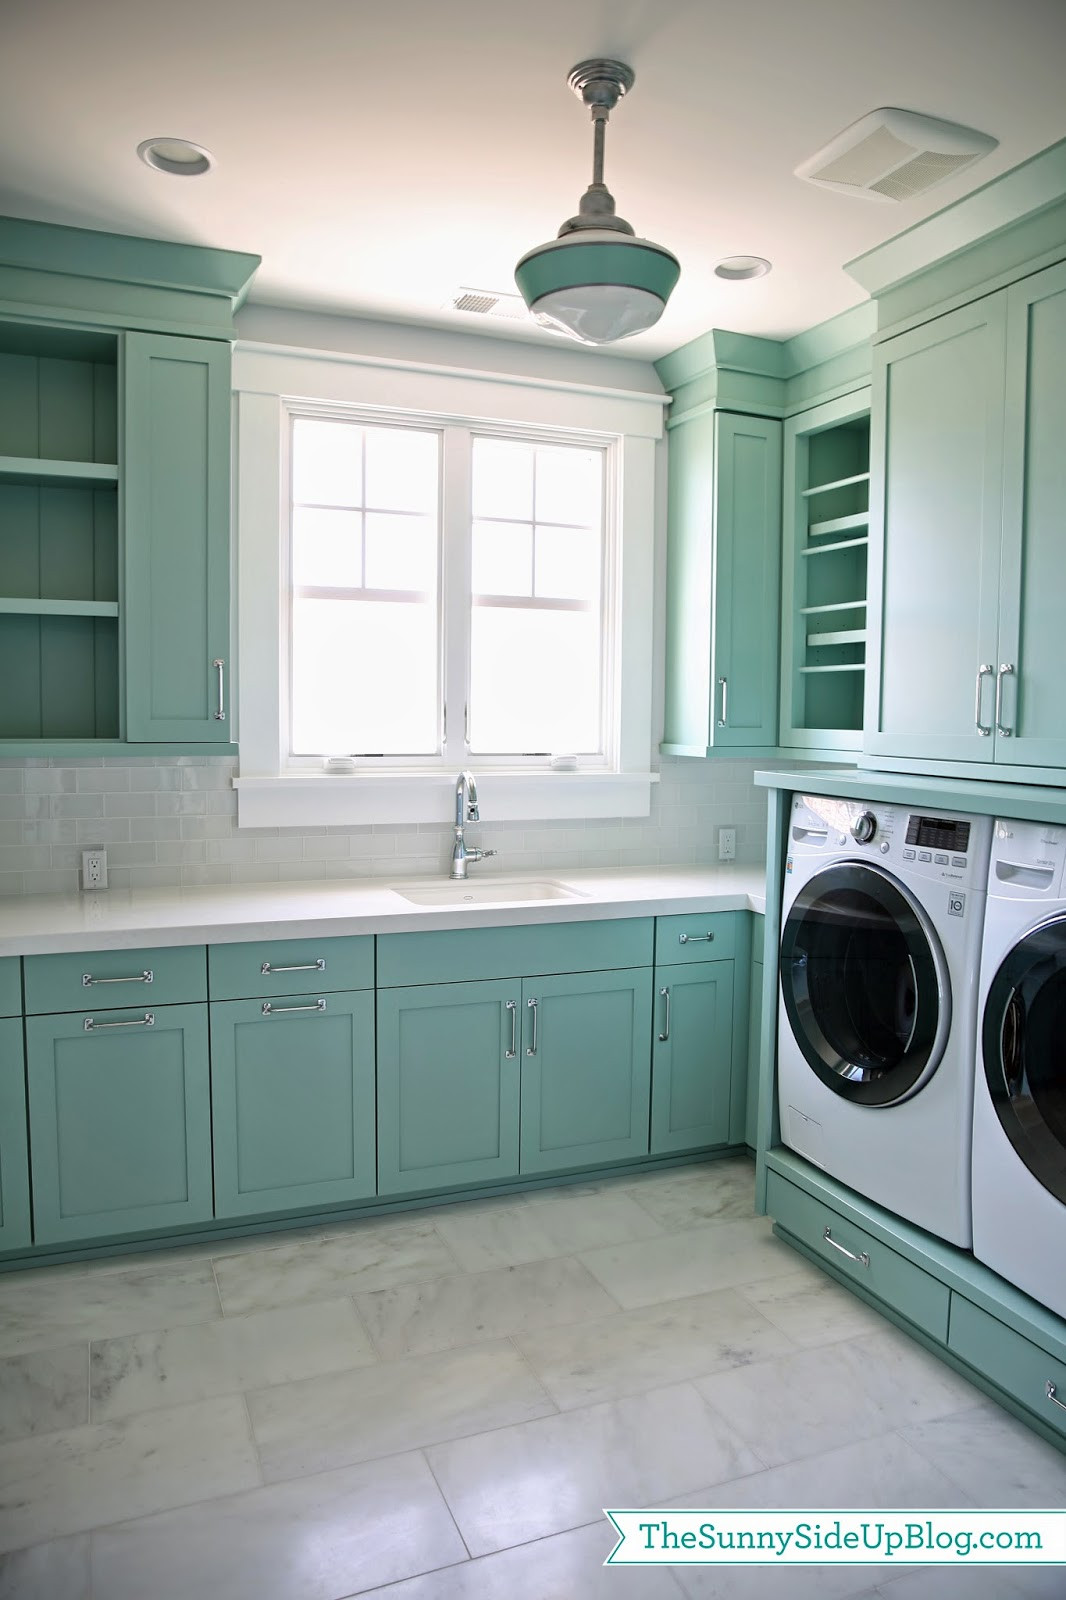 Best ideas about Laundry Room Images . Save or Pin Upstairs Laundry Room The Sunny Side Up Blog Now.